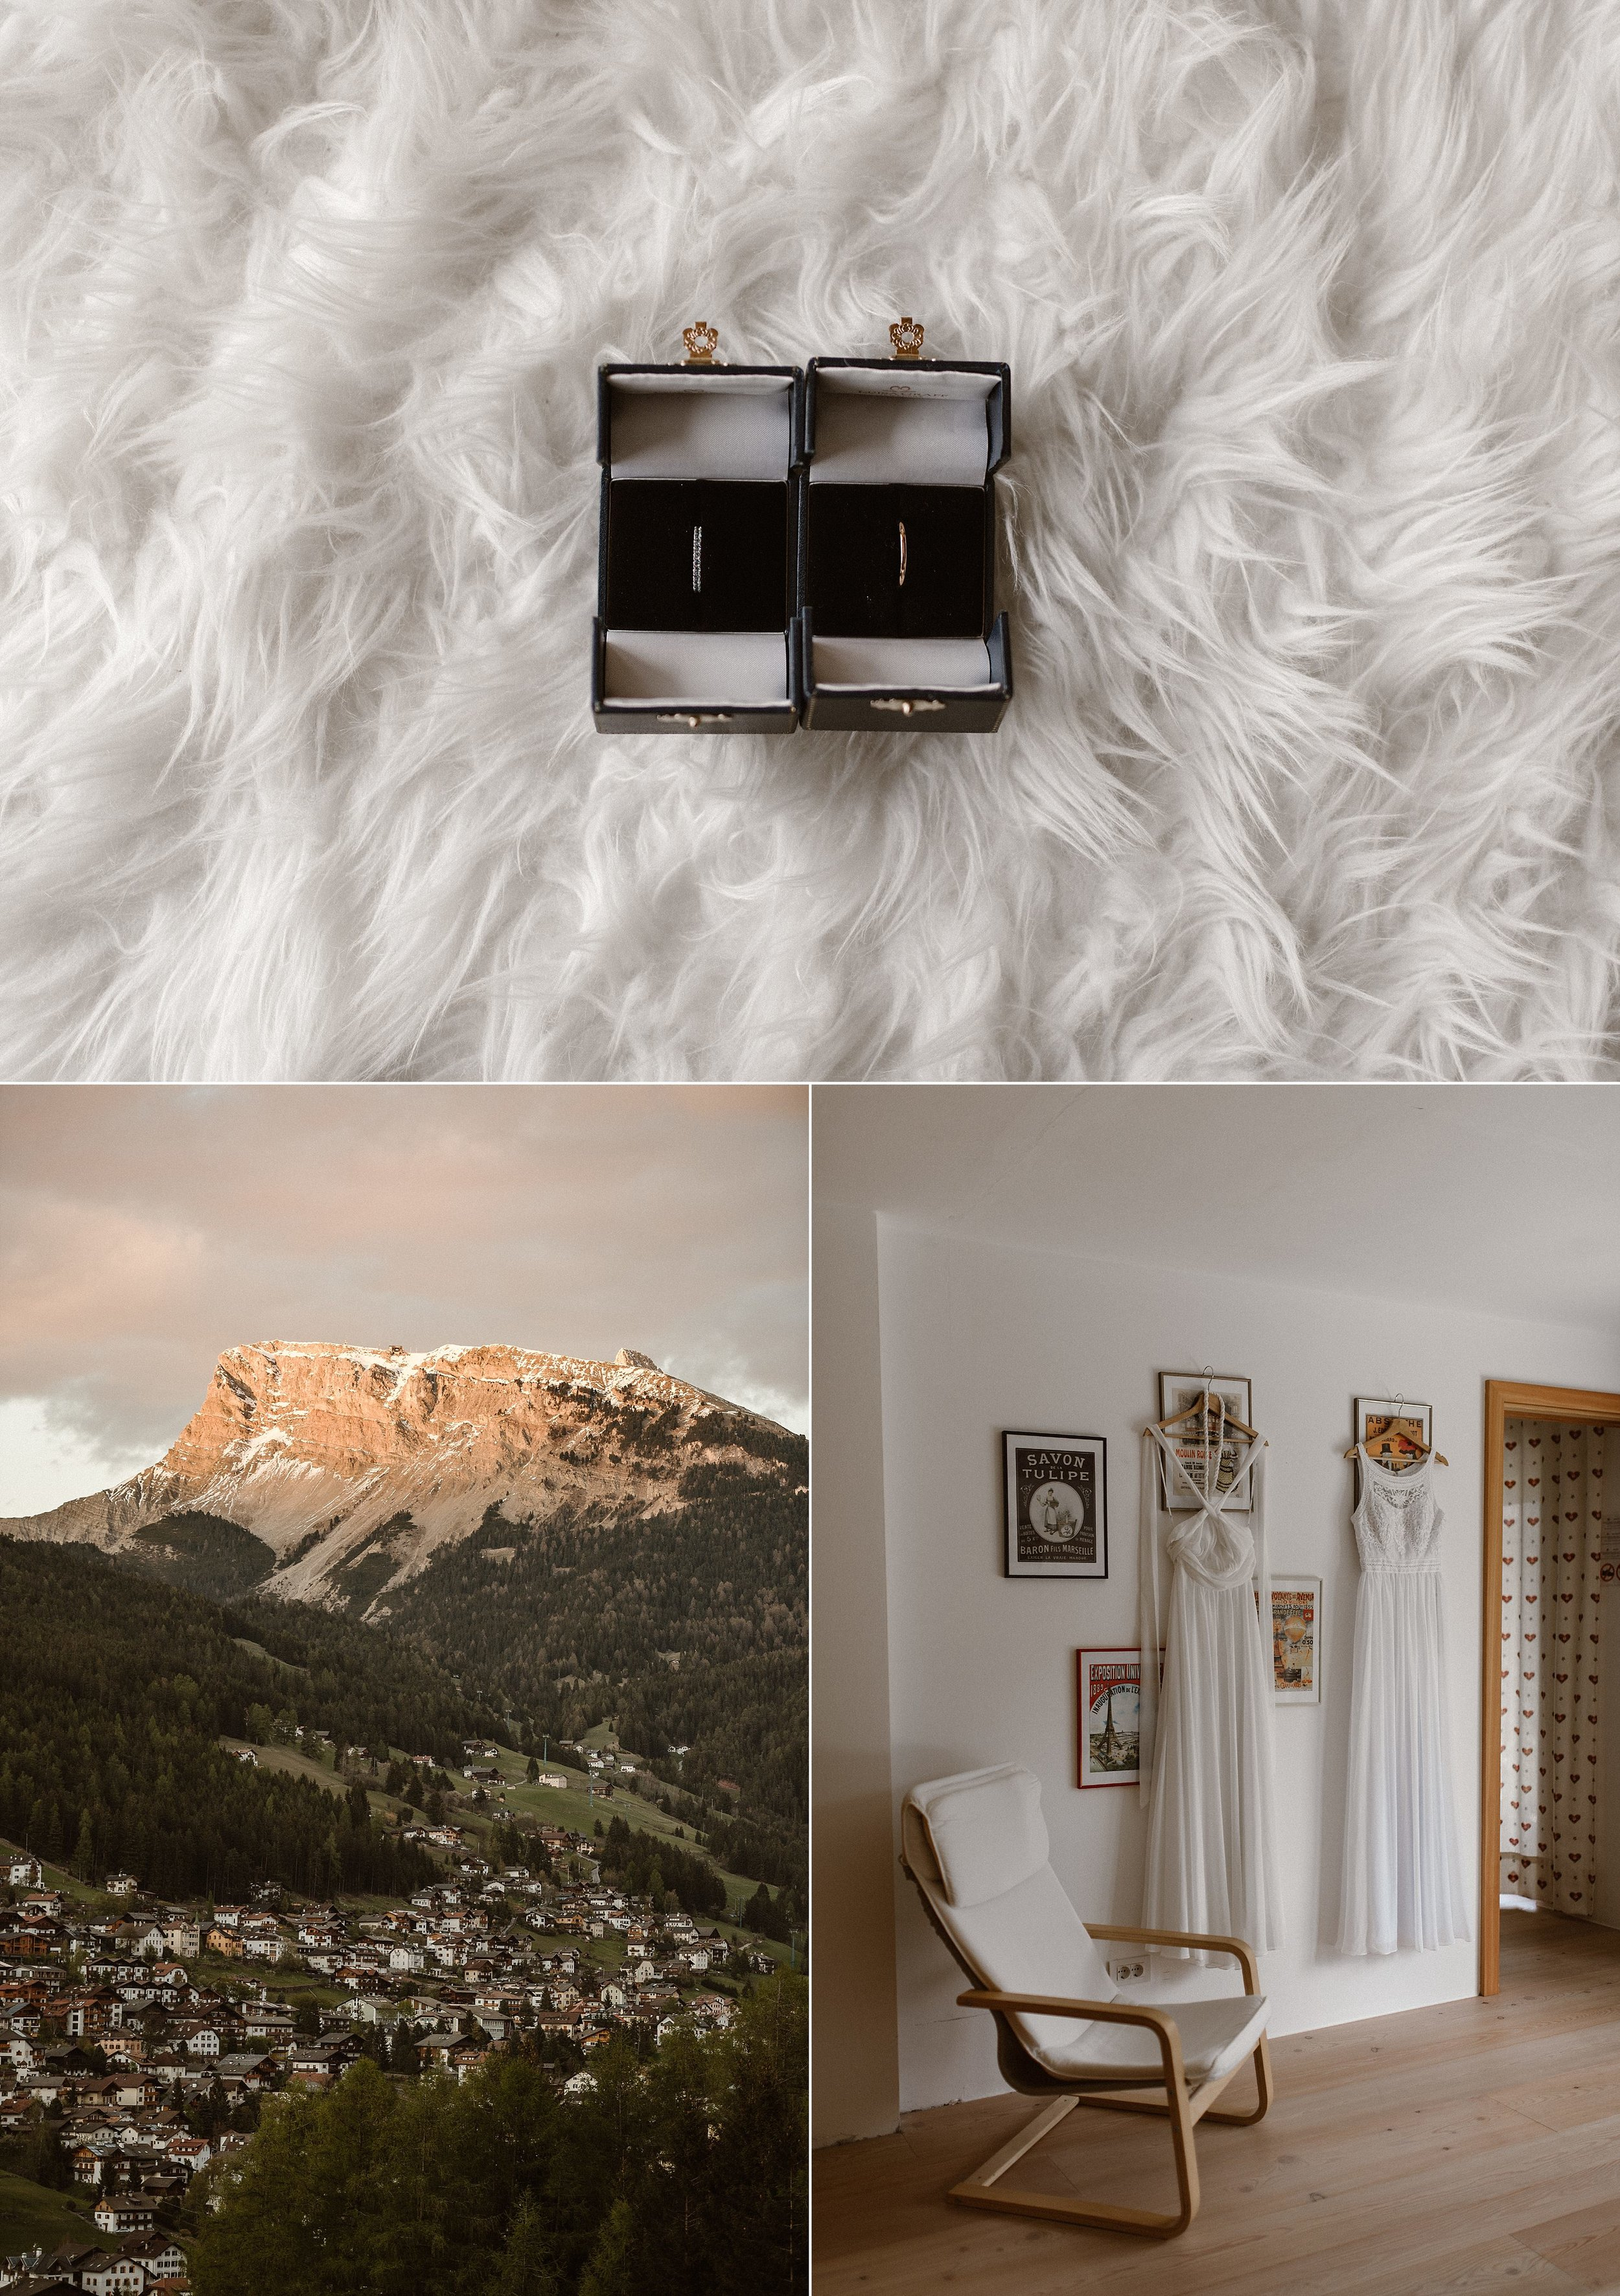 Their simple wedding bands, a symbol of their eternal love, were some of the only details that these ladies brought for their adventurous mountain elopement in the Italian Dolomites.